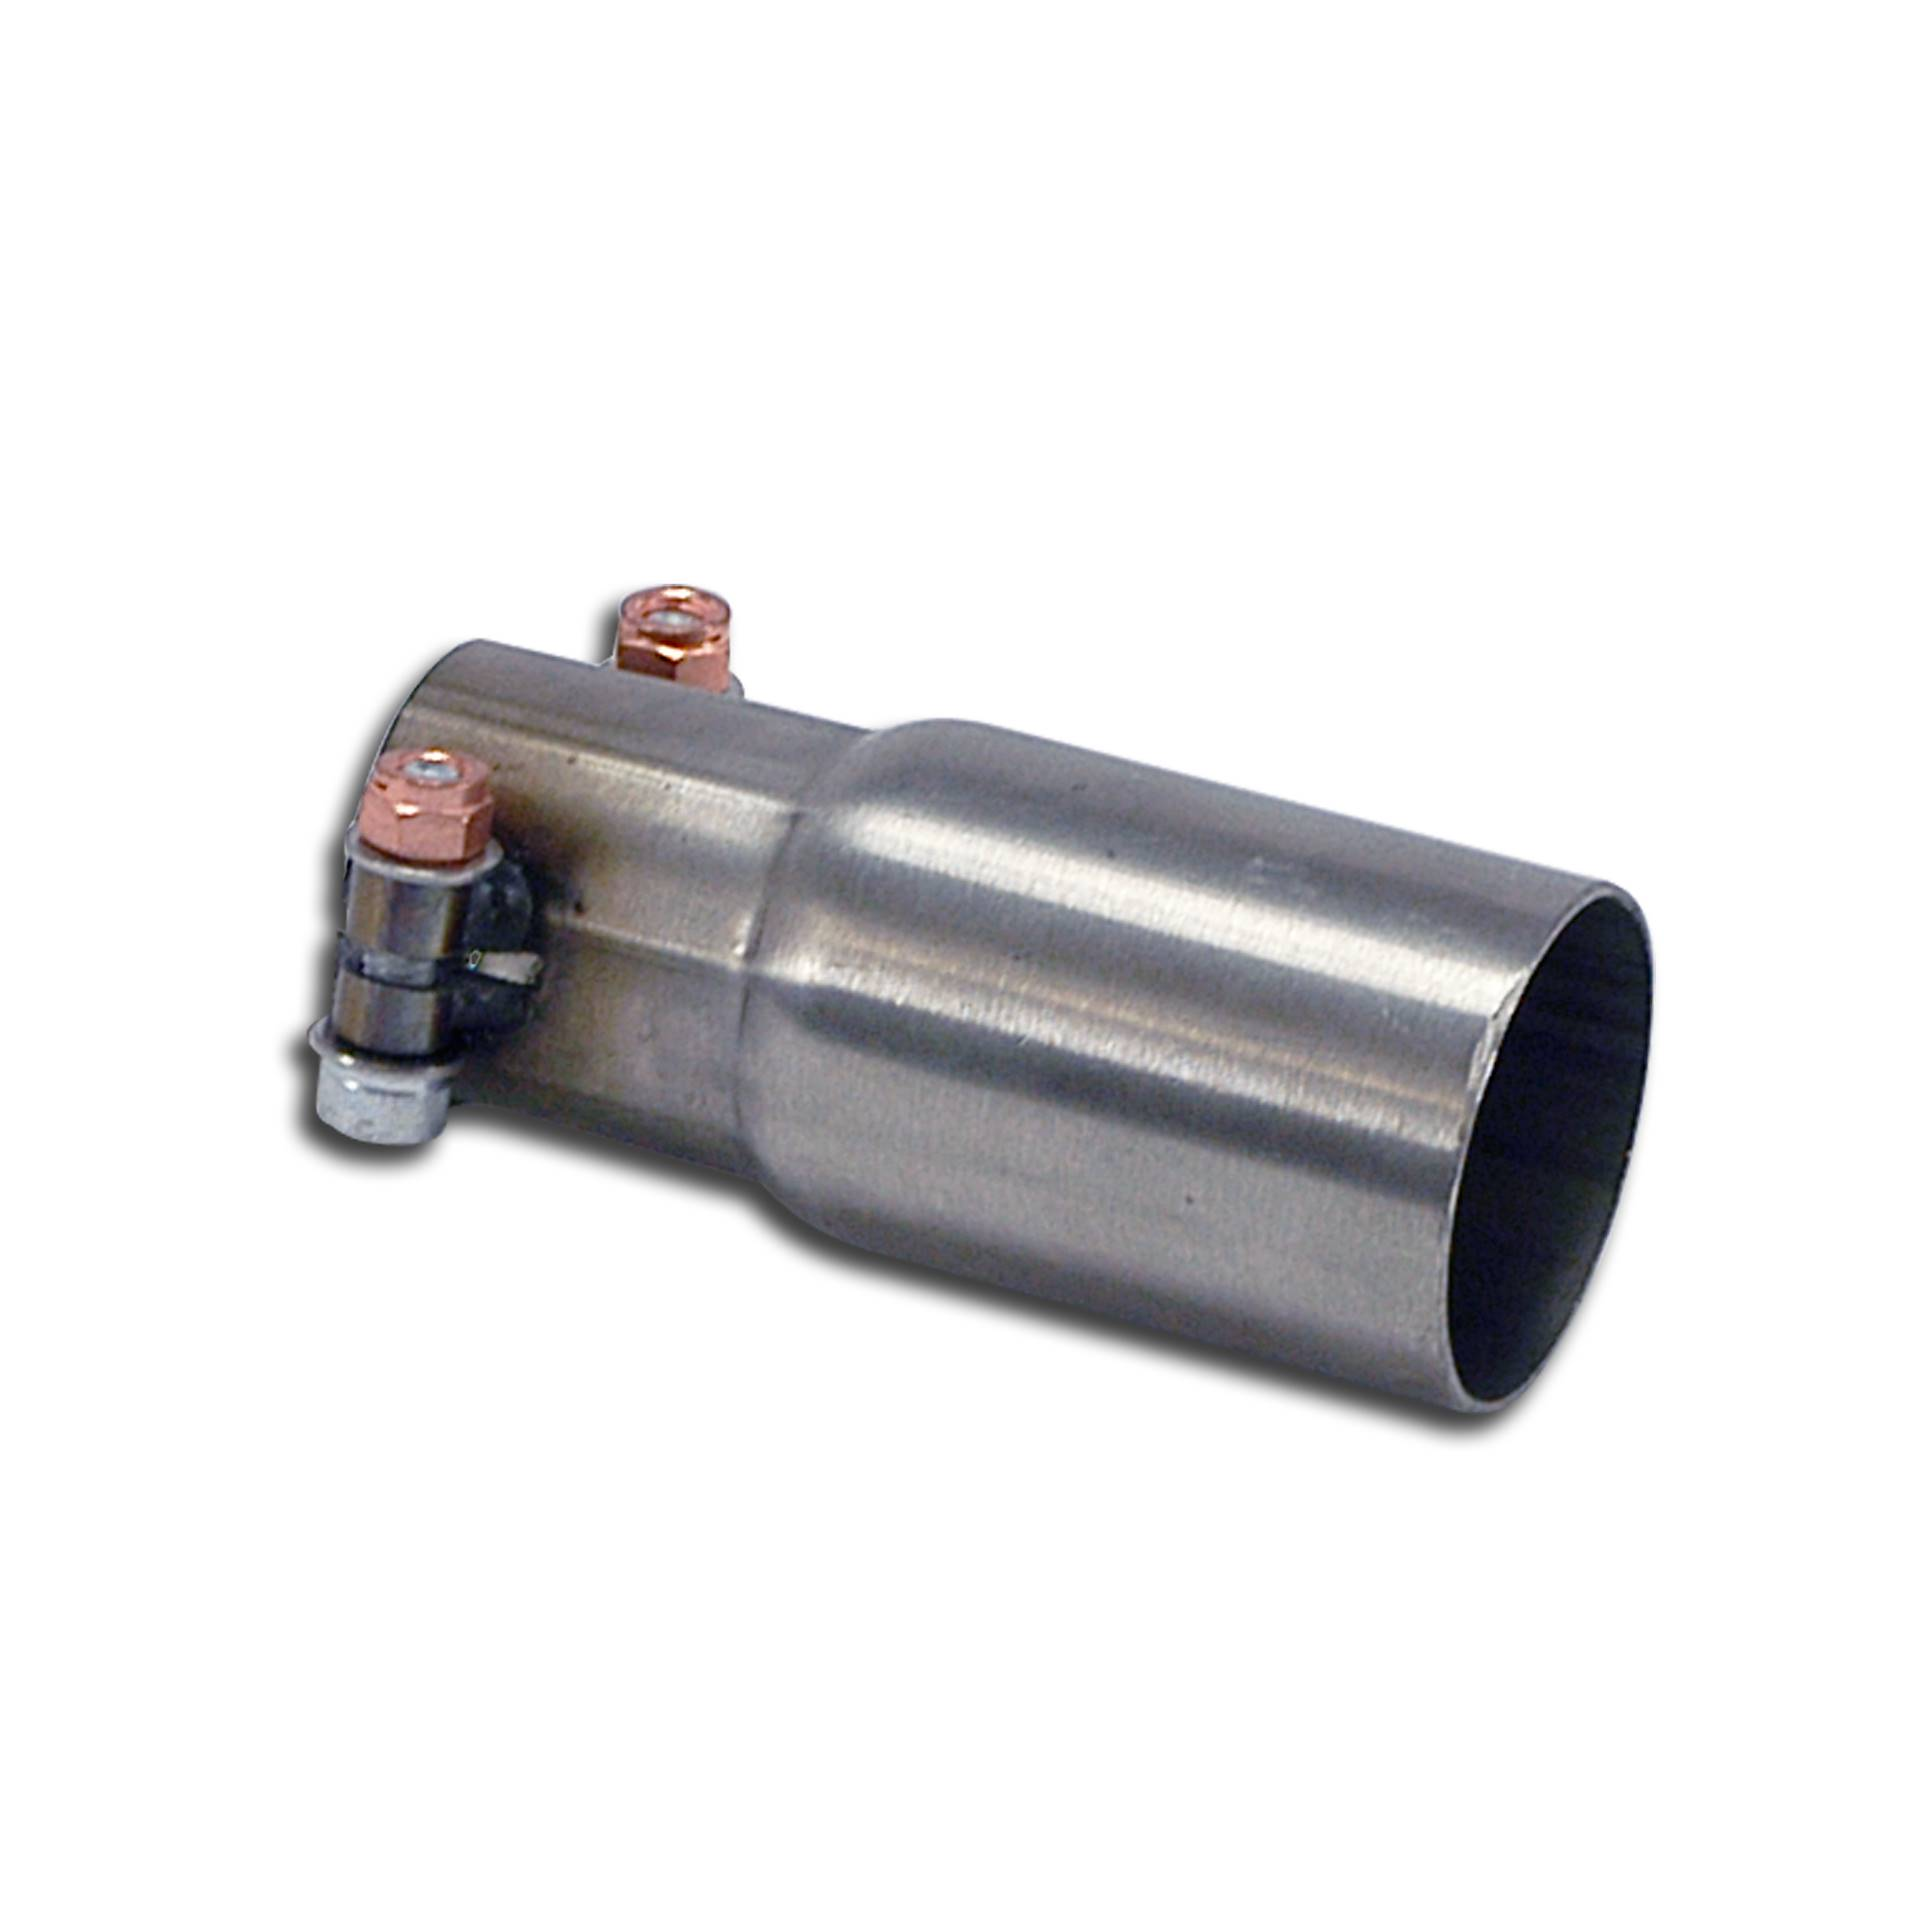 BMW - BMW E91 Touring 320d (M47 - 163 Hp) 2005 -> 2007 Sleeve pipe for OEM catalytic converter, performance exhaust systems